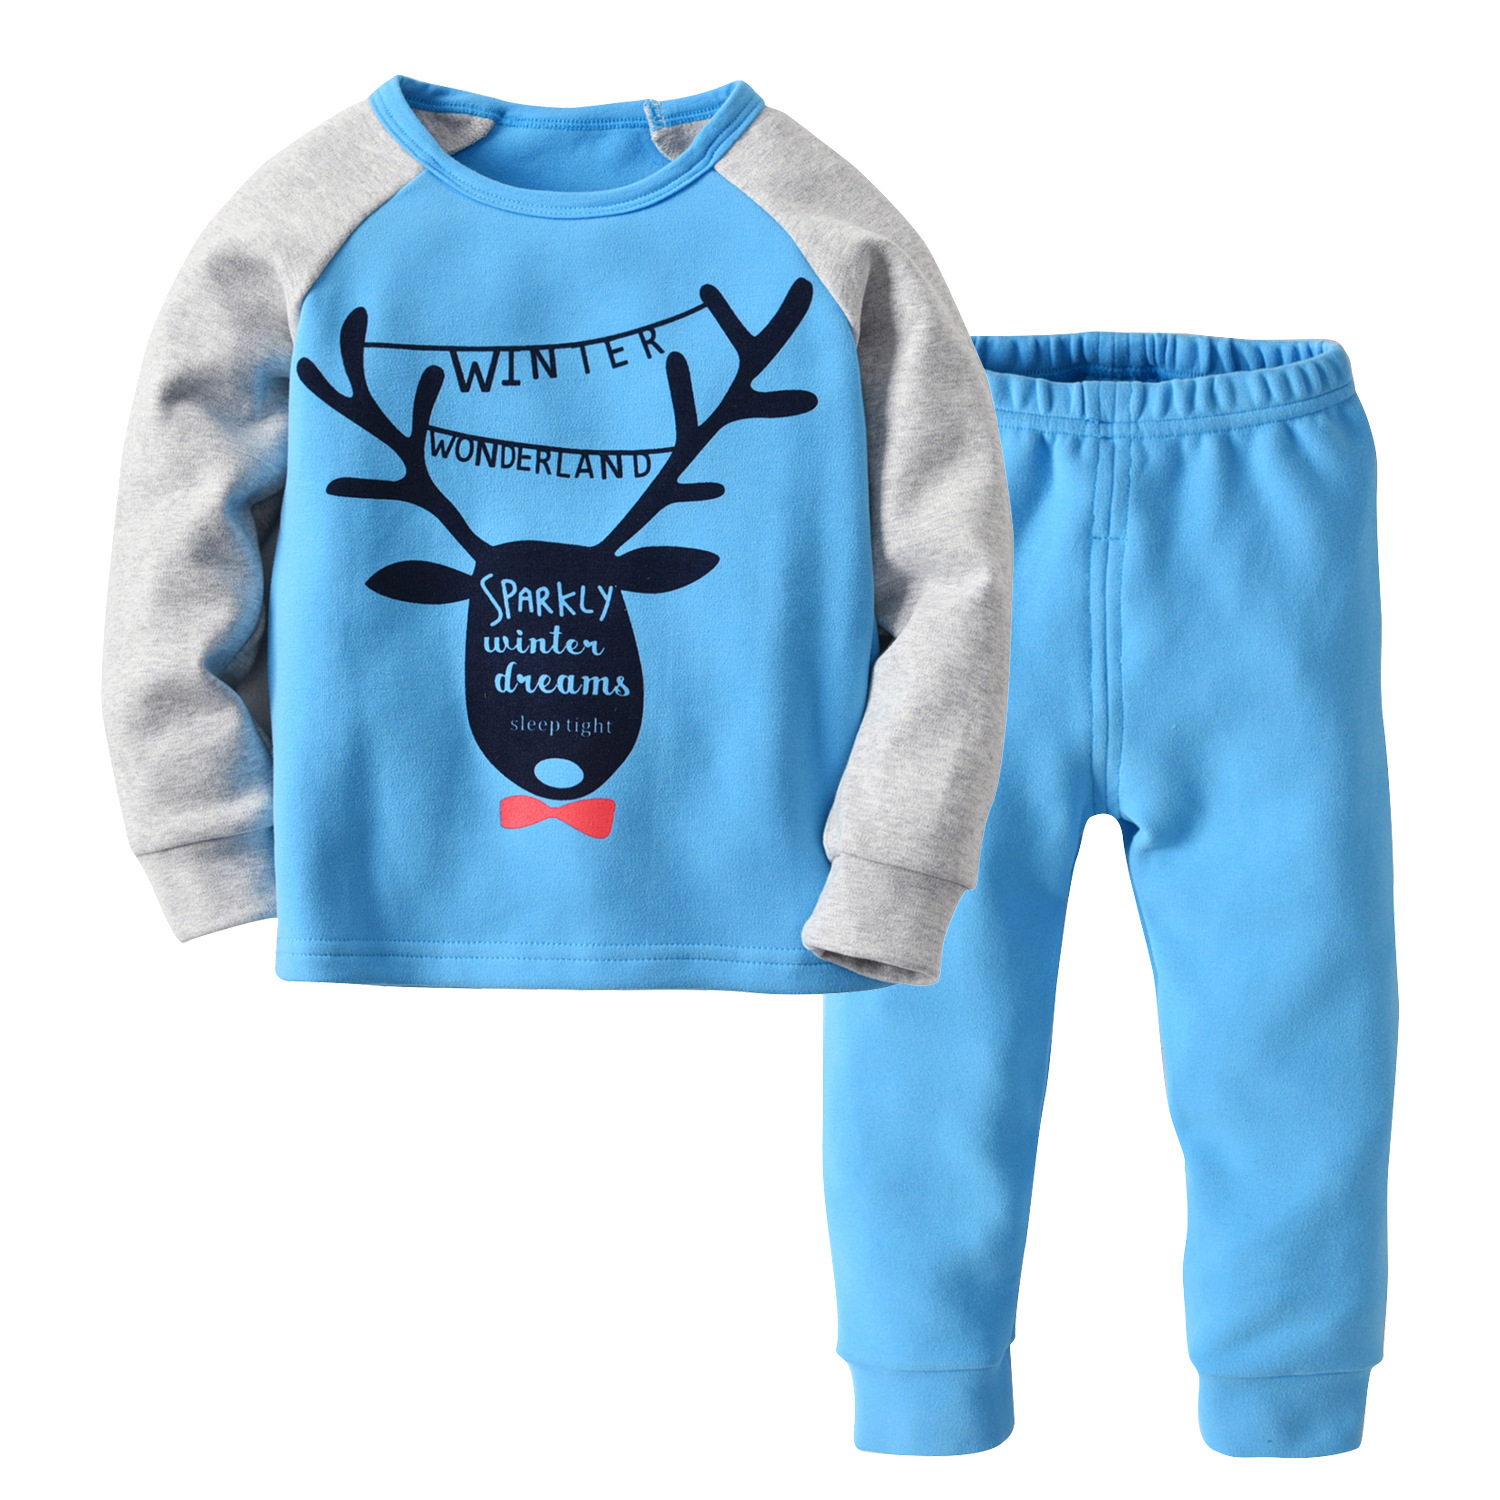 High Quality Kids Pijama Boys Pijamas Cotton Pyjama Boy Christmas Pajamas Pyjamas Kids Teens Home wear Sleepwear 2-14Yrs CA270